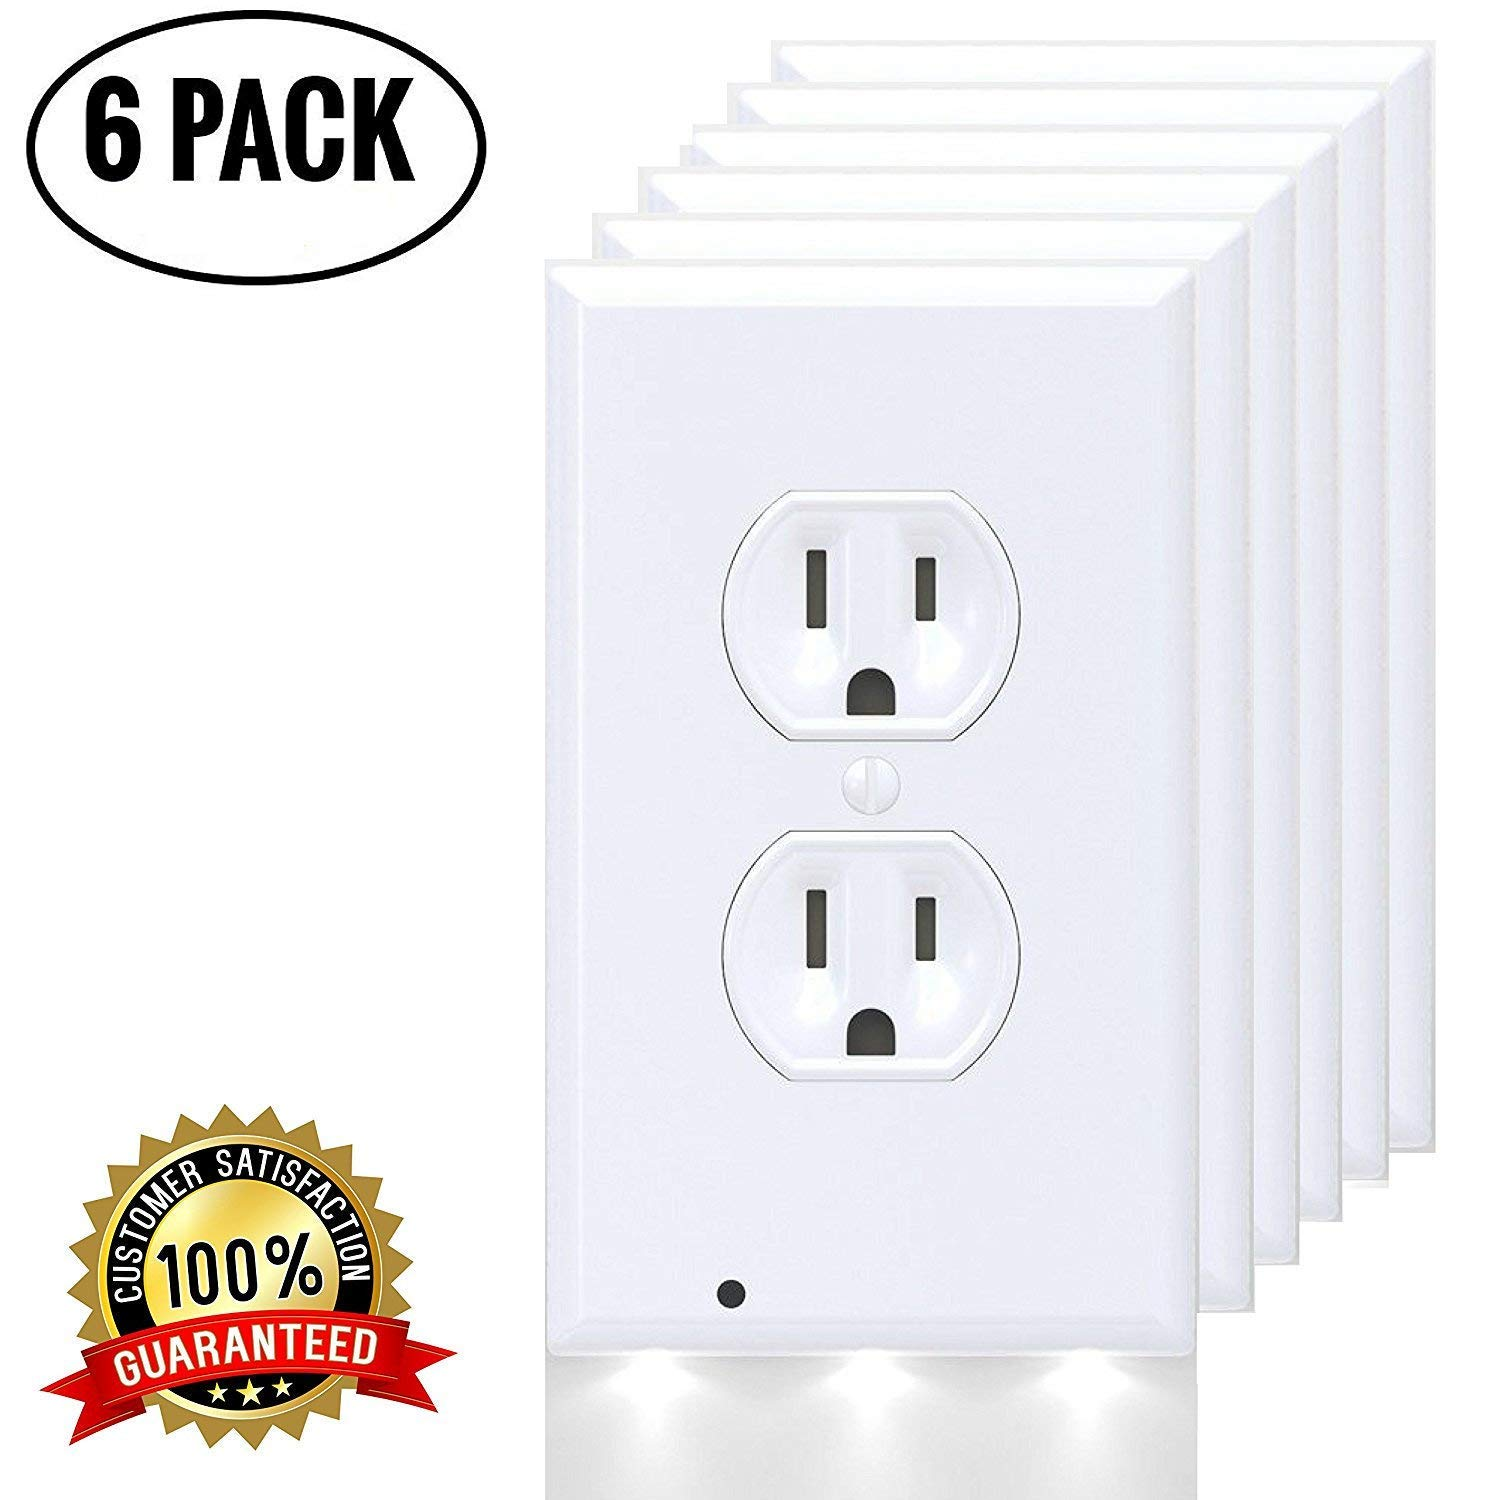 Blakell 6 Packs Outlet Cover, Electrical cover Plates Nightlight, Covers Plate Energy Efficient nightlights, Easy Installation Outlet Wall Plate for Your Home/Bathroom/Bedroom/Garage/Hallway/ by Blakell (Image #1)